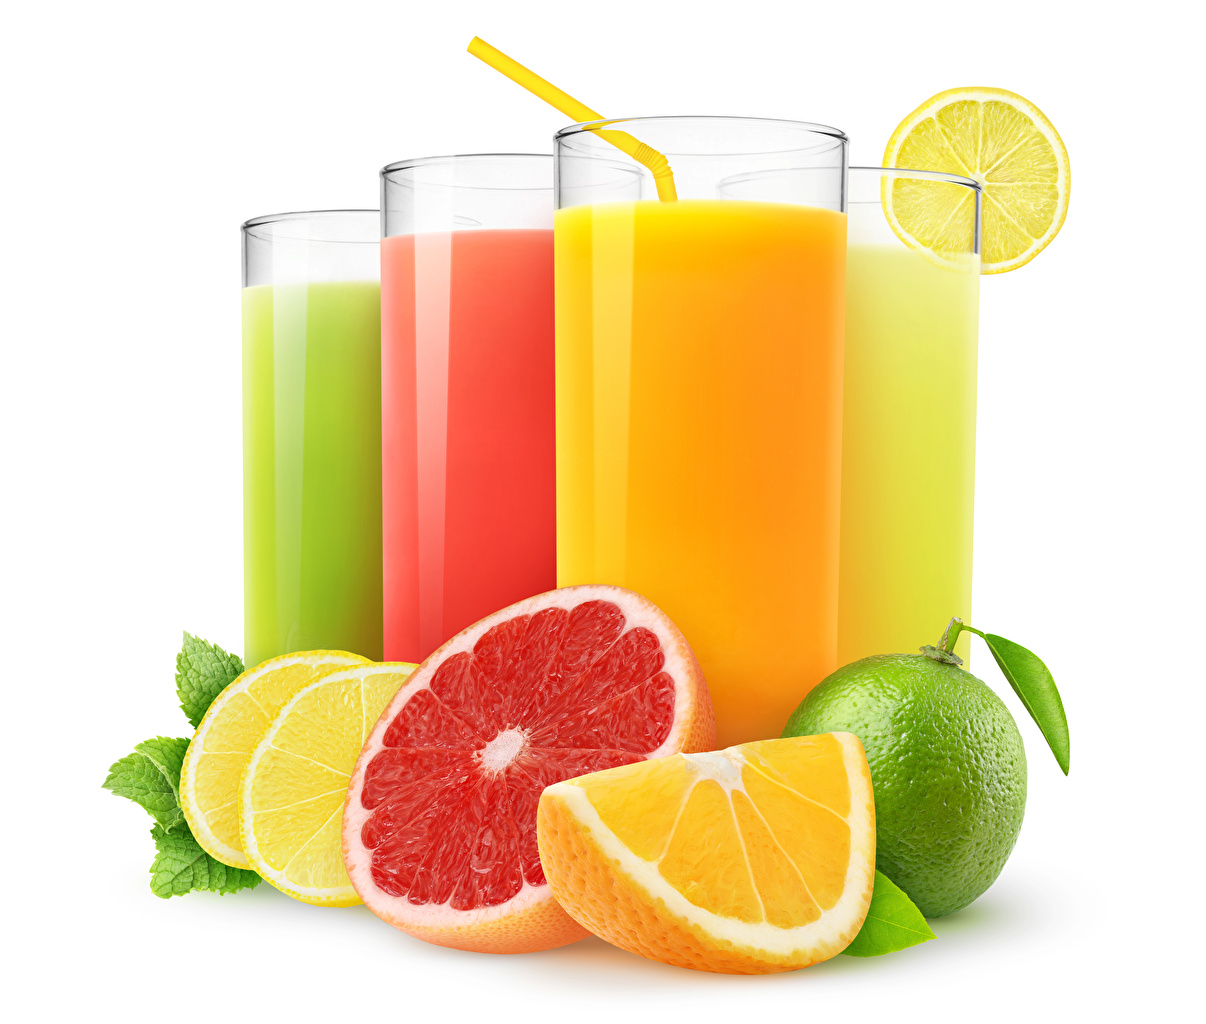 Wallpaper Lime Juice Grapefruit Orange fruit Lemons Highball glass Food Citrus White background